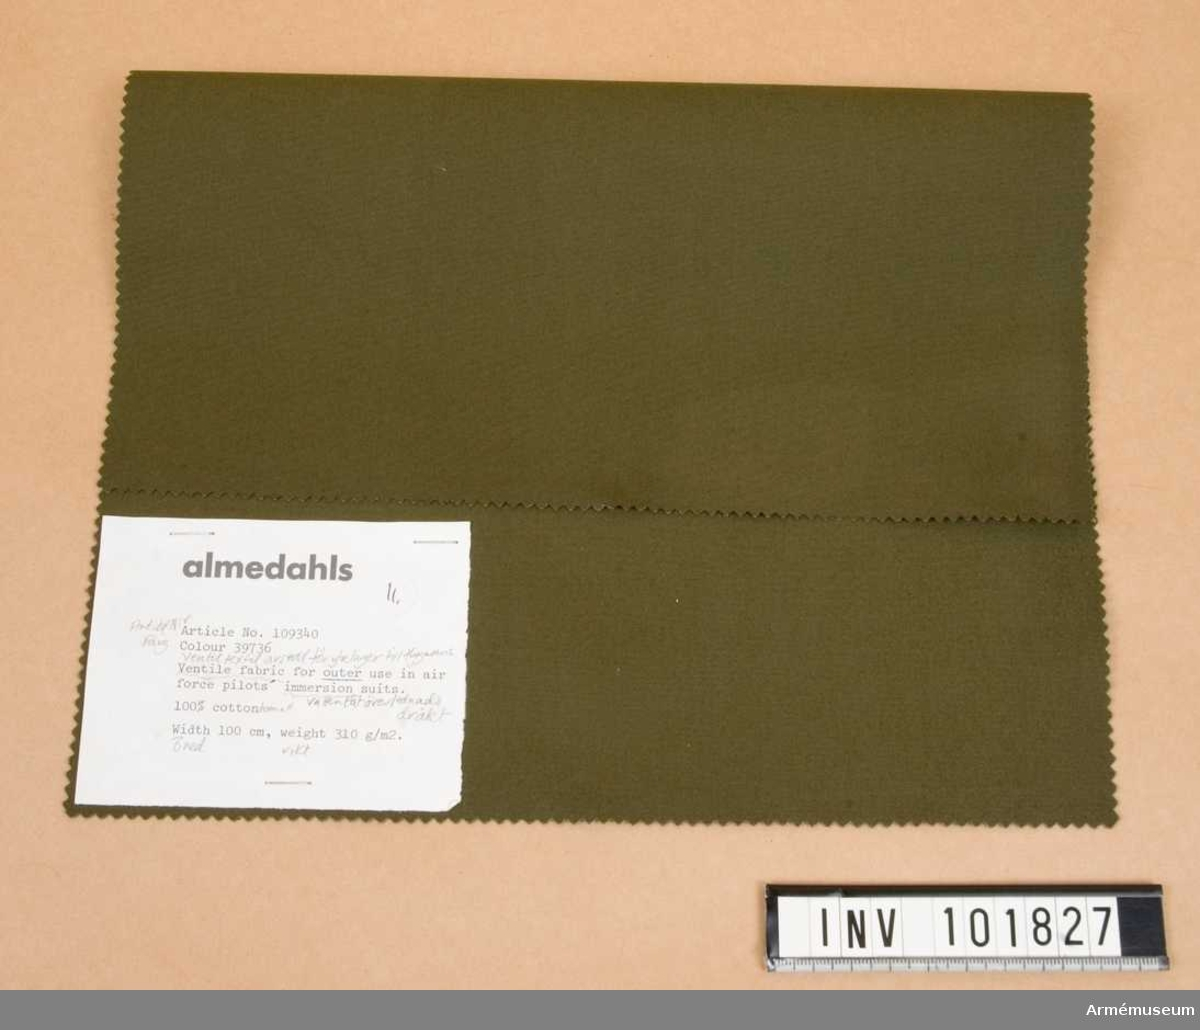 Två prover. Yttertyget har en etikett med text: Ventile fabric for outer use in air force pilots immersion suits. Innertygets etikett har likalydande text.